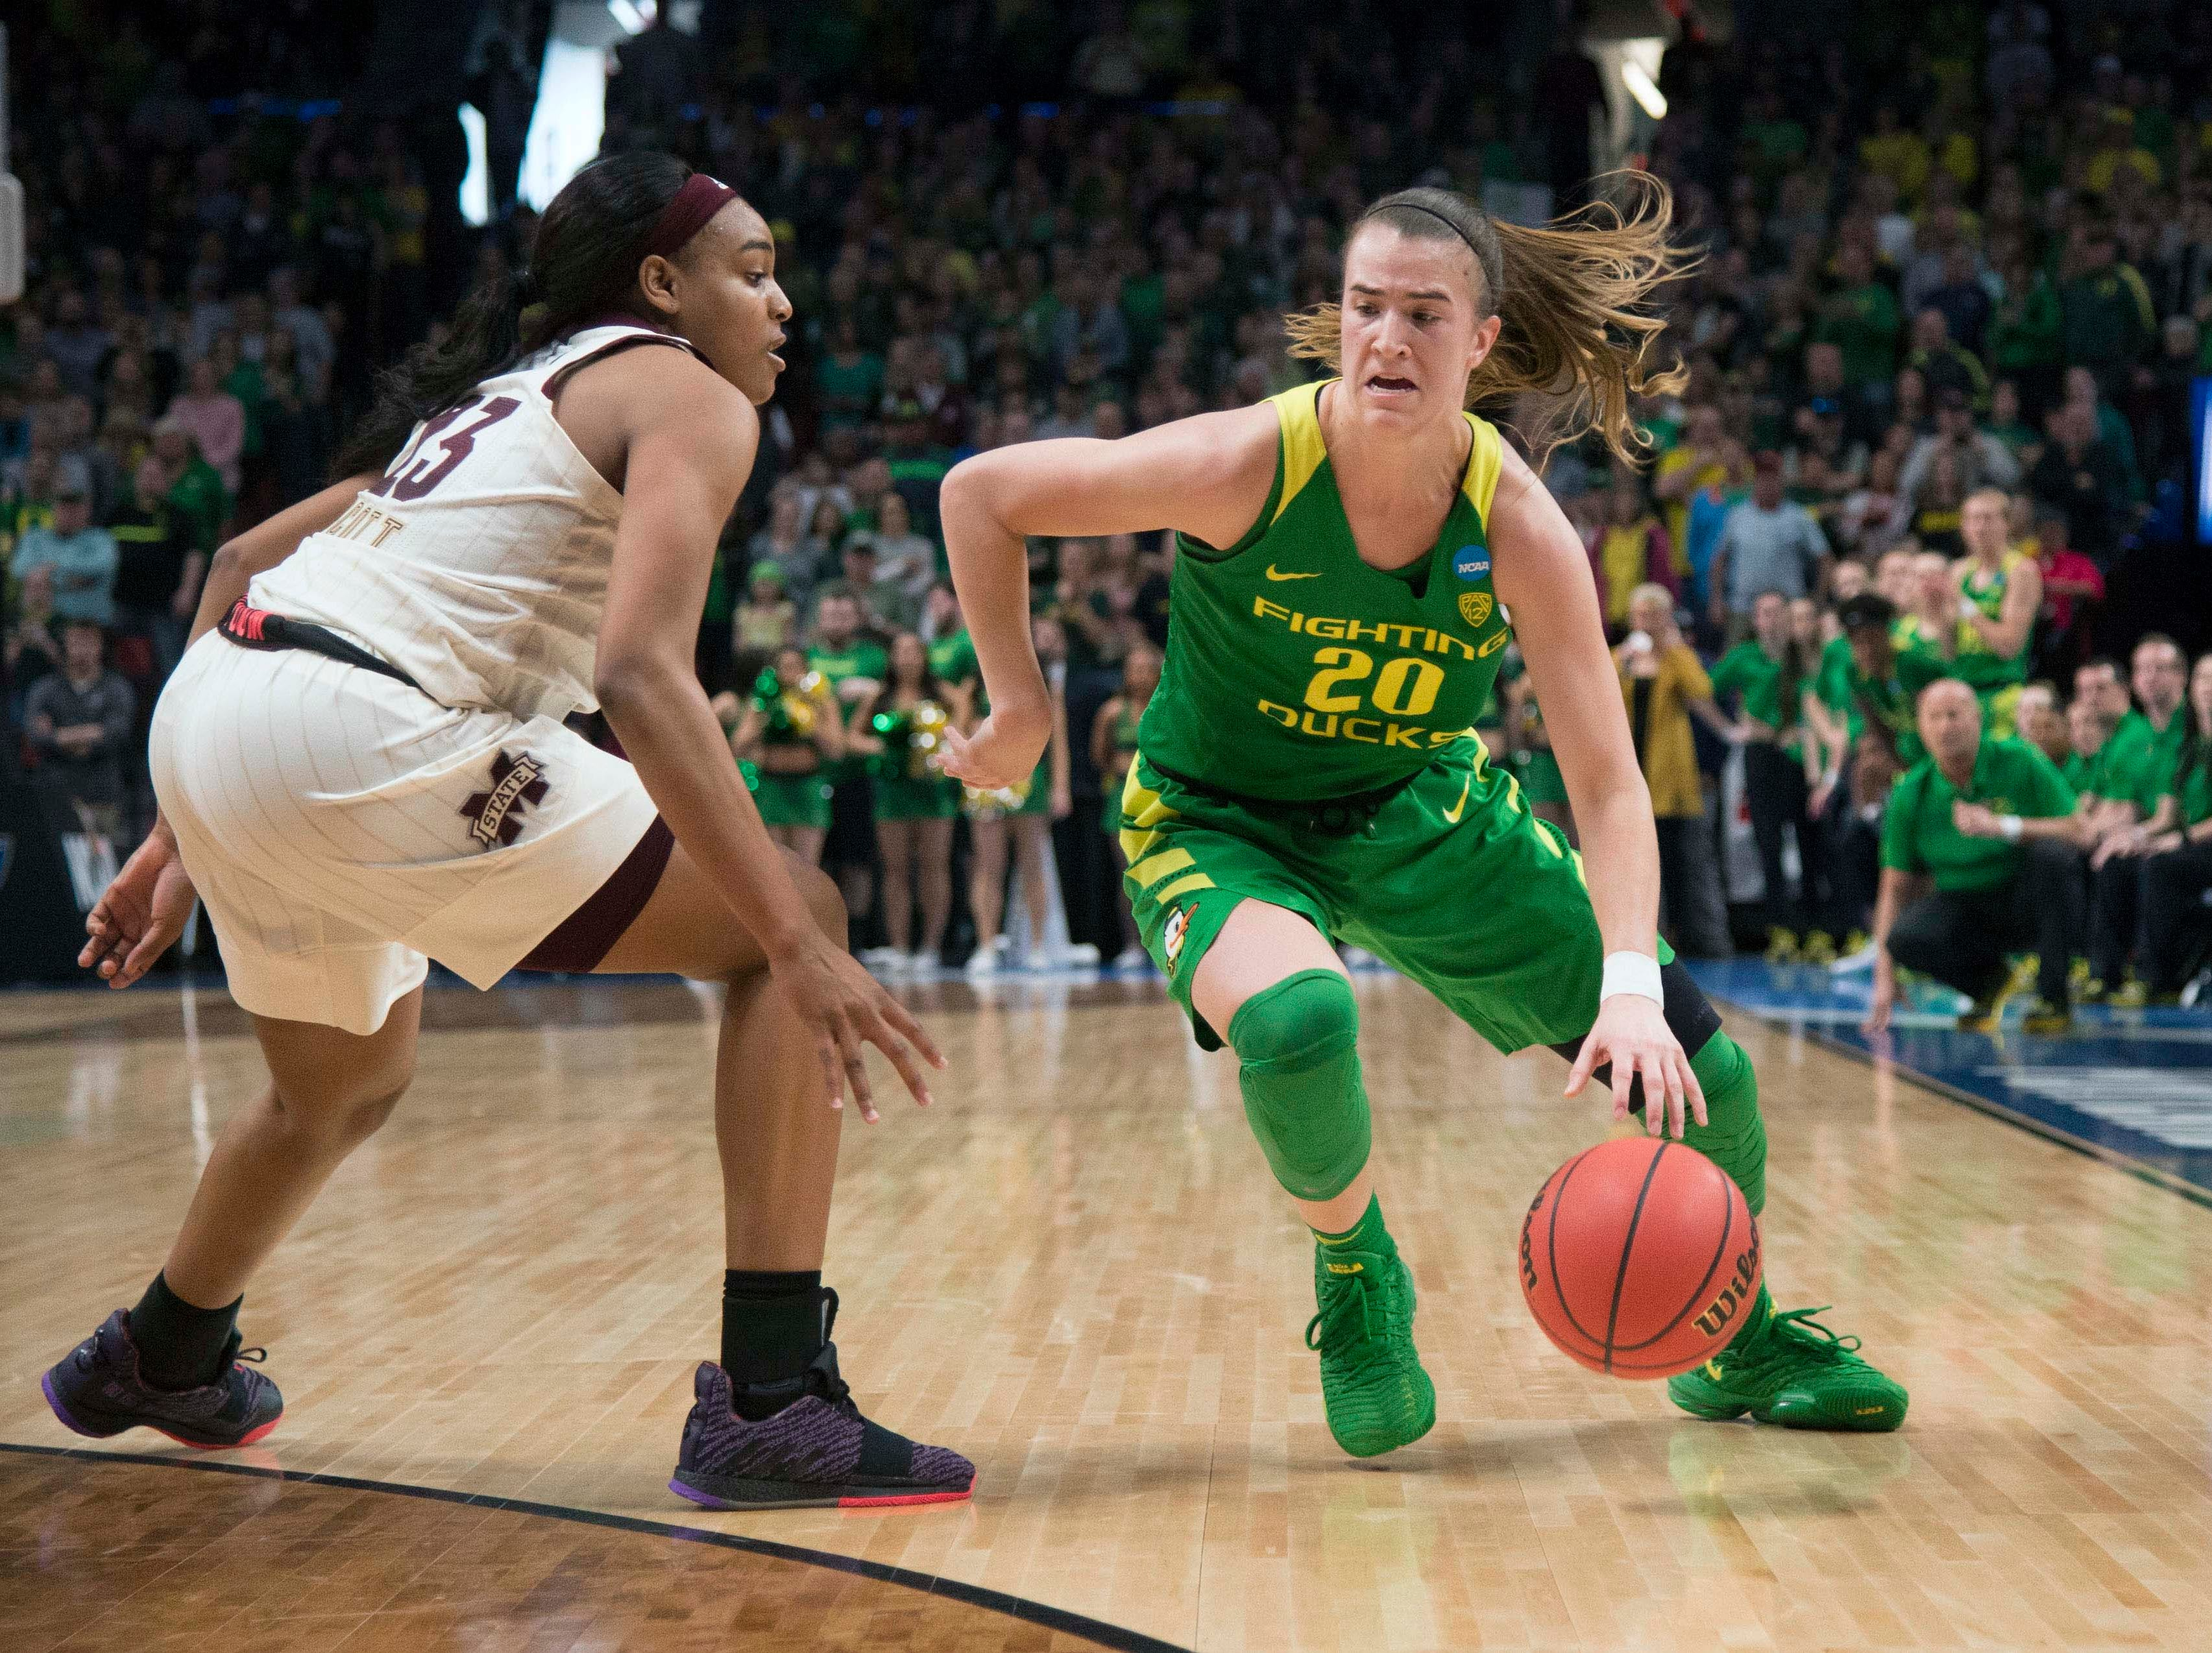 Oregon Ducks guard Sabrina Ionescu (20) drives to the basket against Mississippi State Bulldogs guard Bre'Amber Scott (23) during the first half in the championship game of the Portland regional in the women's 2019 NCAA Tournament at Moda Center.